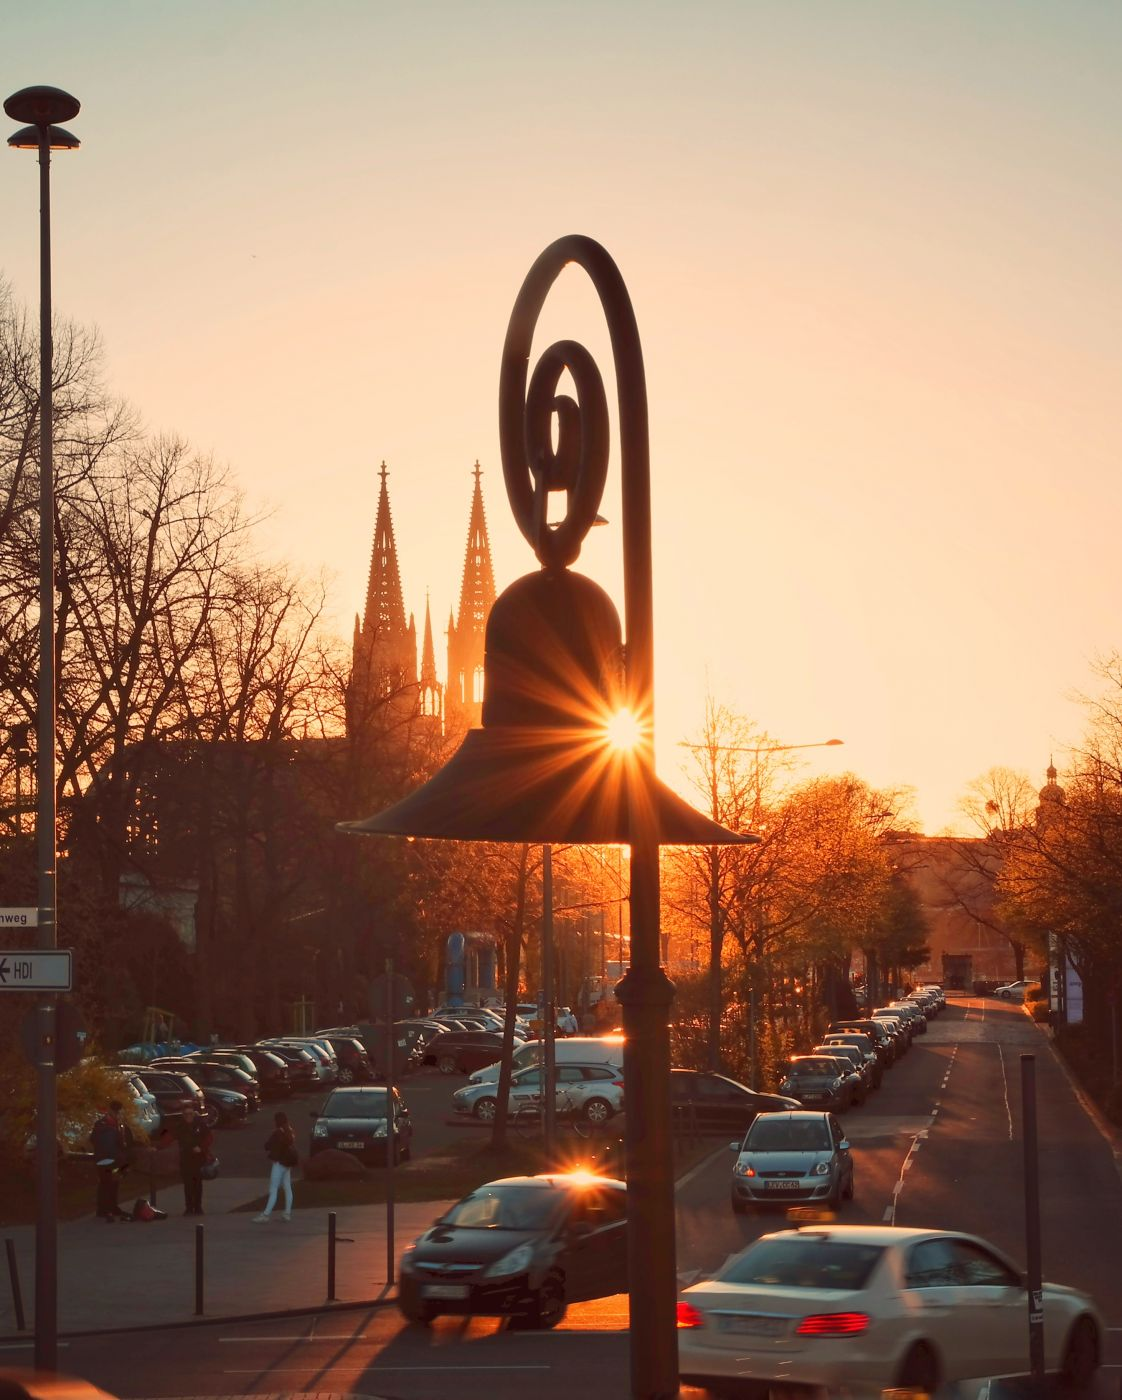 Sunset through the Lamp, Germany